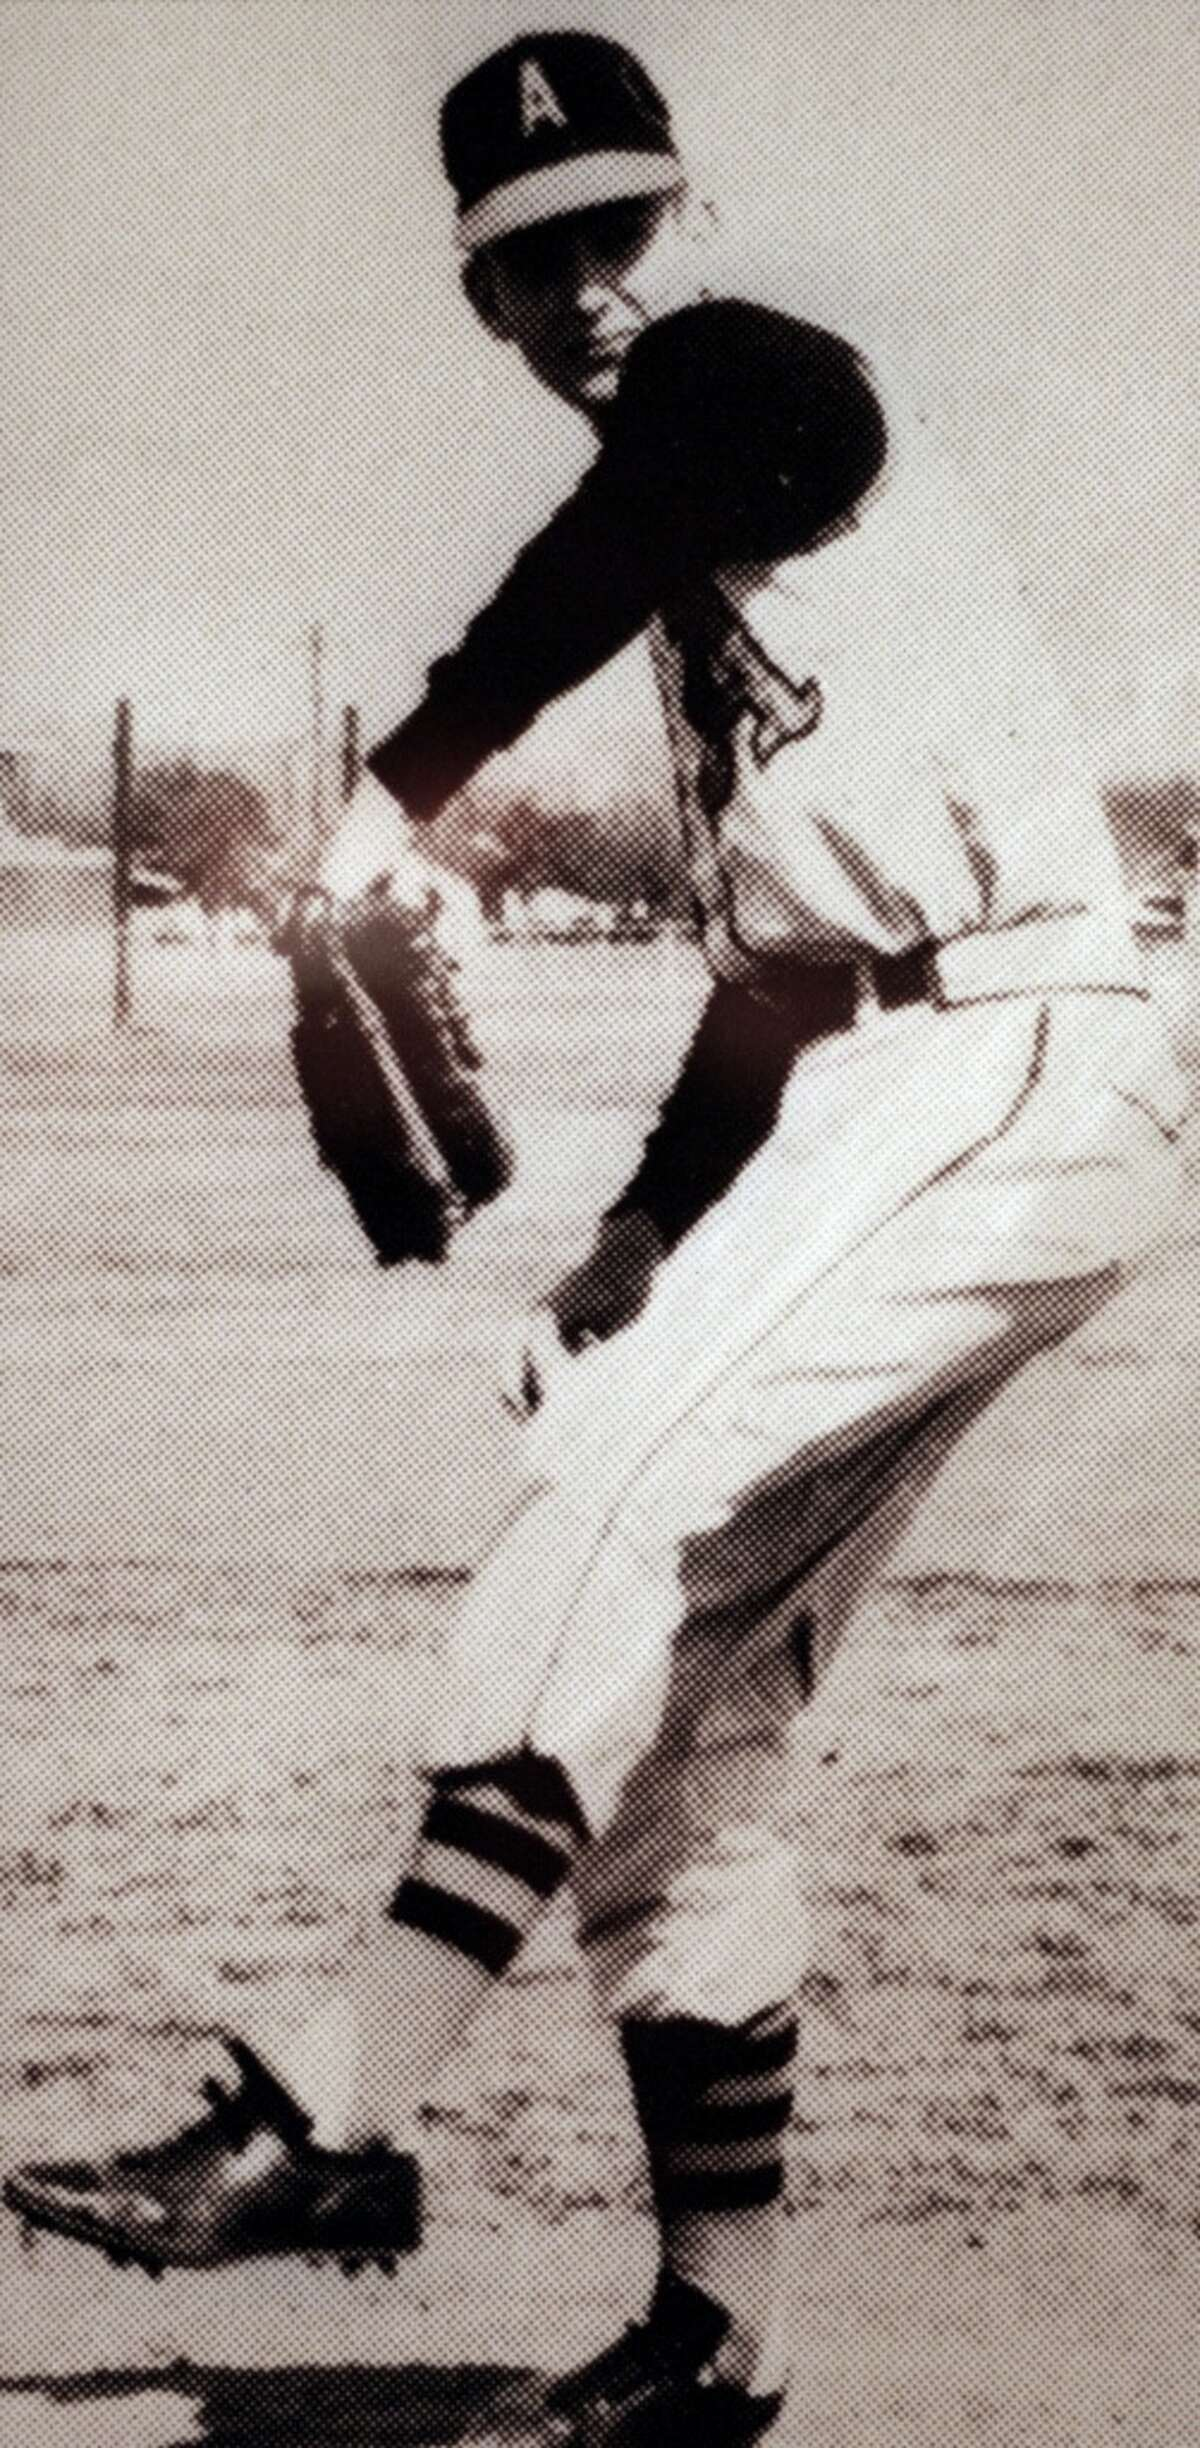 Endless love Ryan in pitching pose during his high school years in Alvin.Ryan and his wife Ruth were sweethearts at Alvin High School, home of the Alvin Yellowjackets.